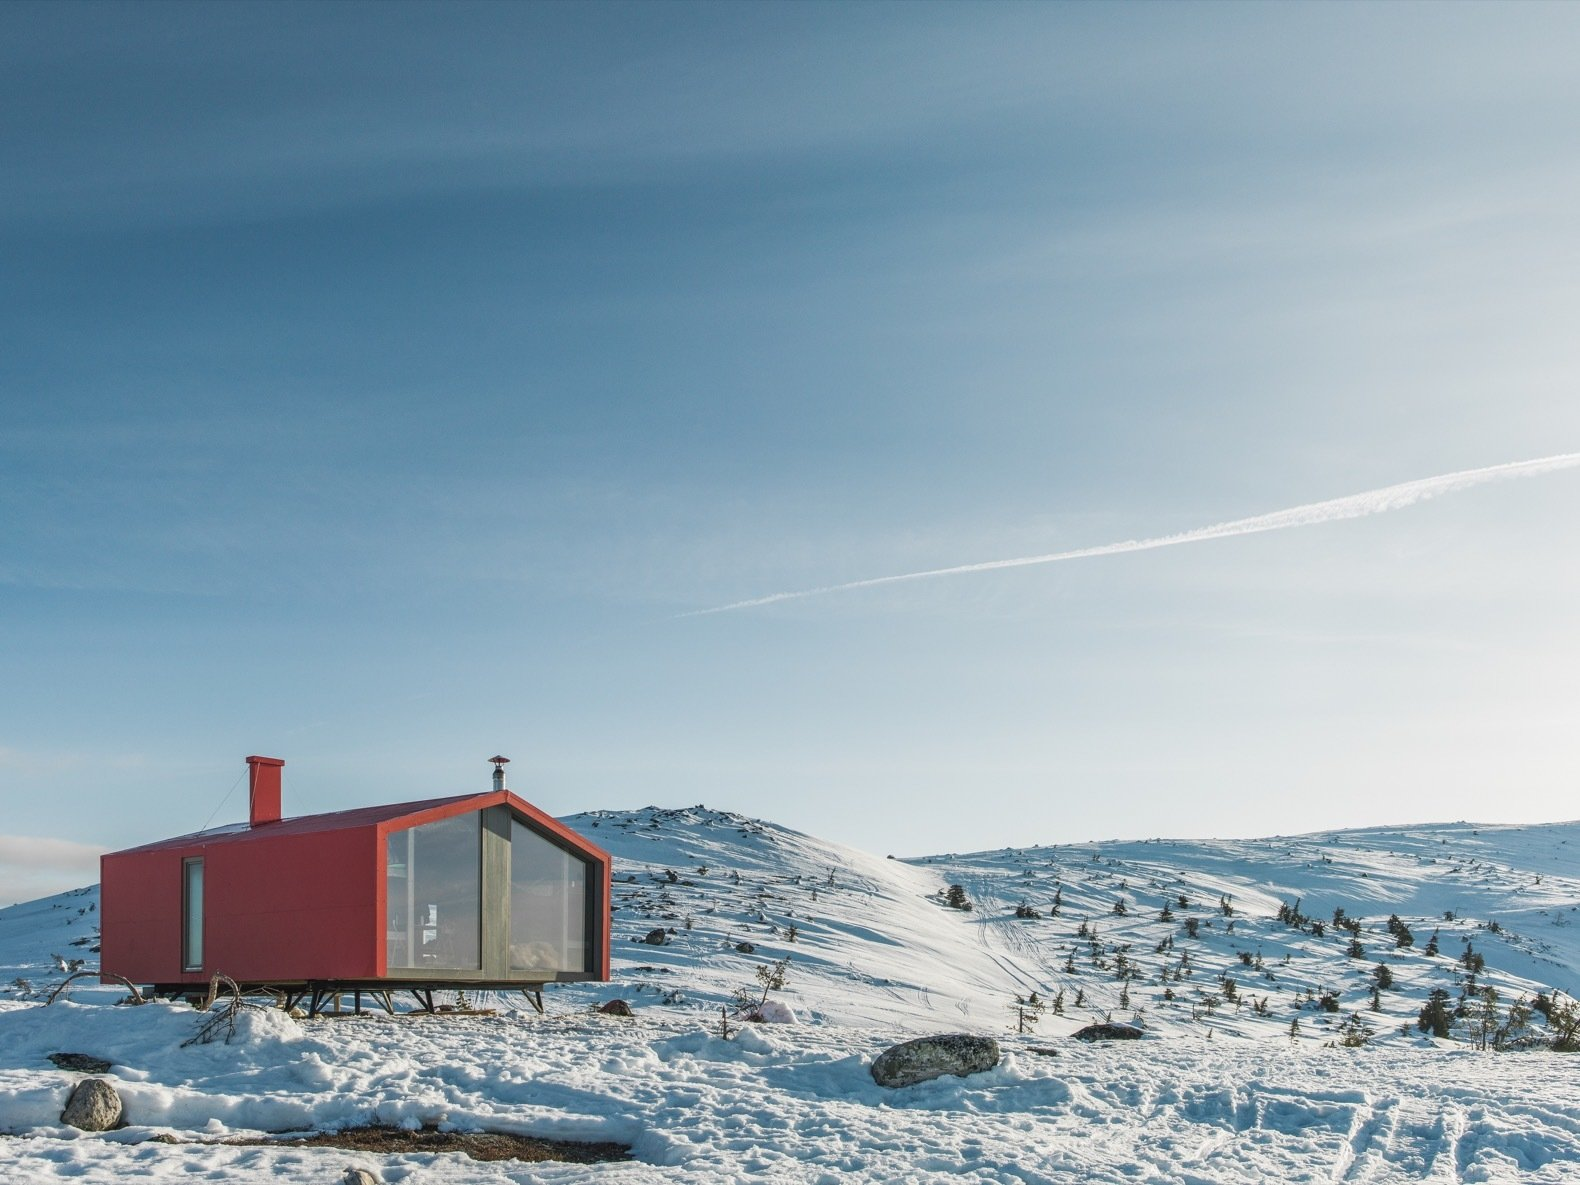 Go Off-Grid in Russia With This Bright Red Prefab Cabin